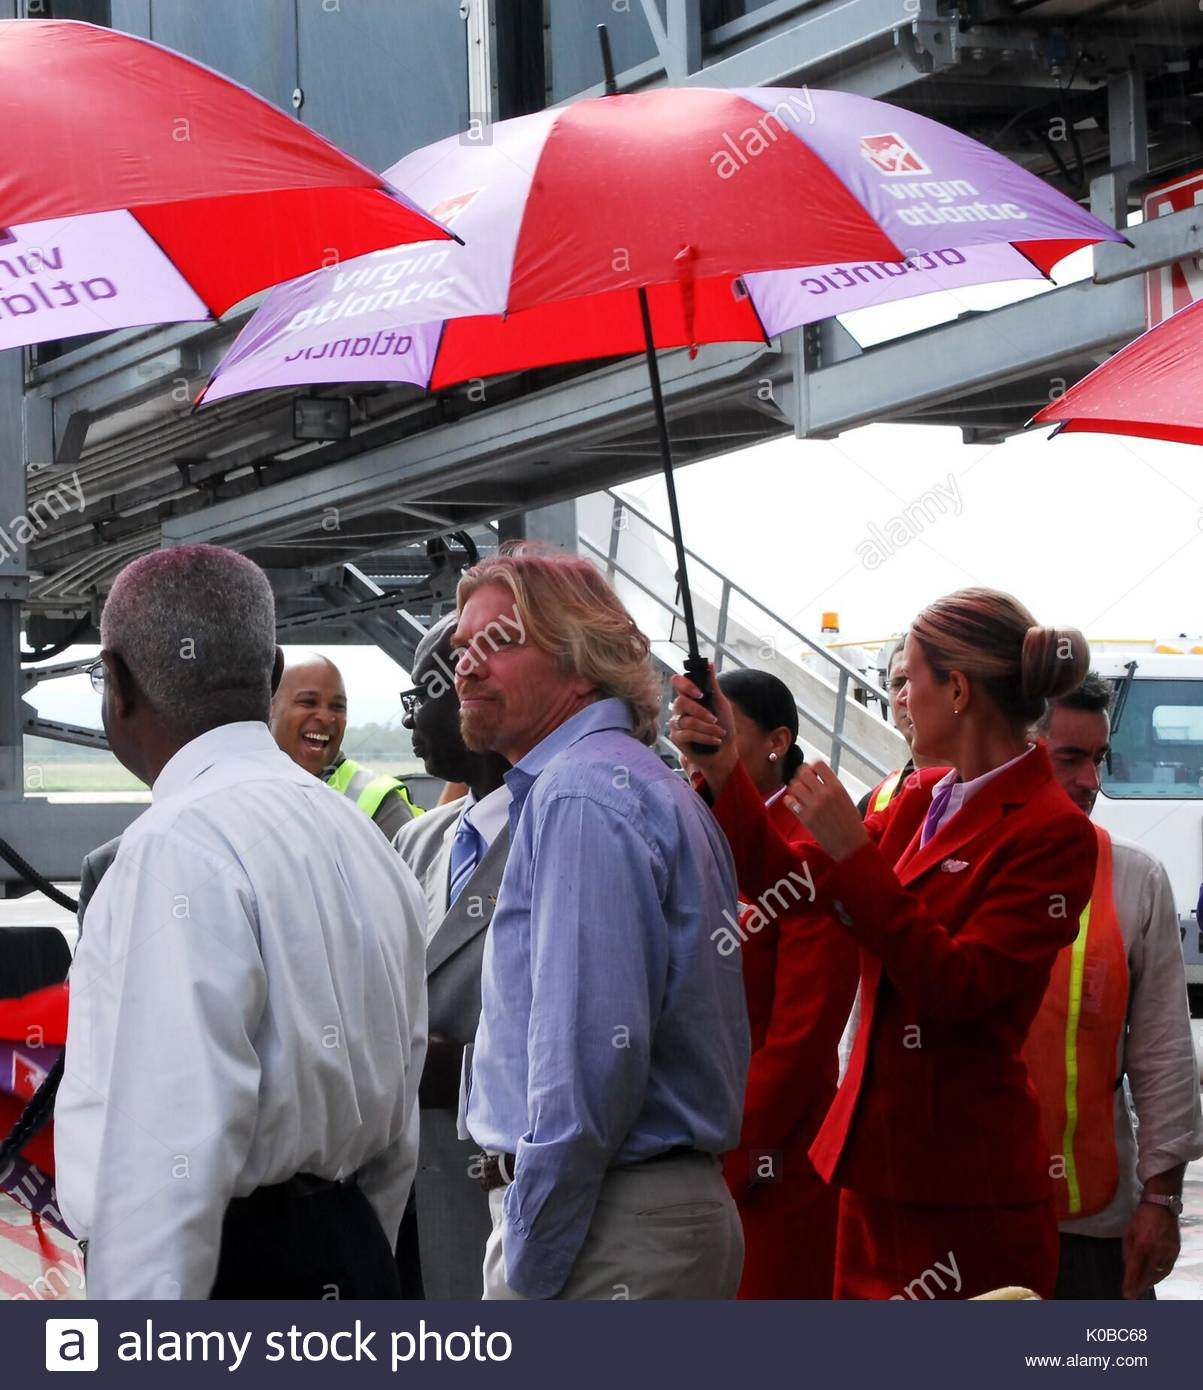 The Importance of Being Richard Branson